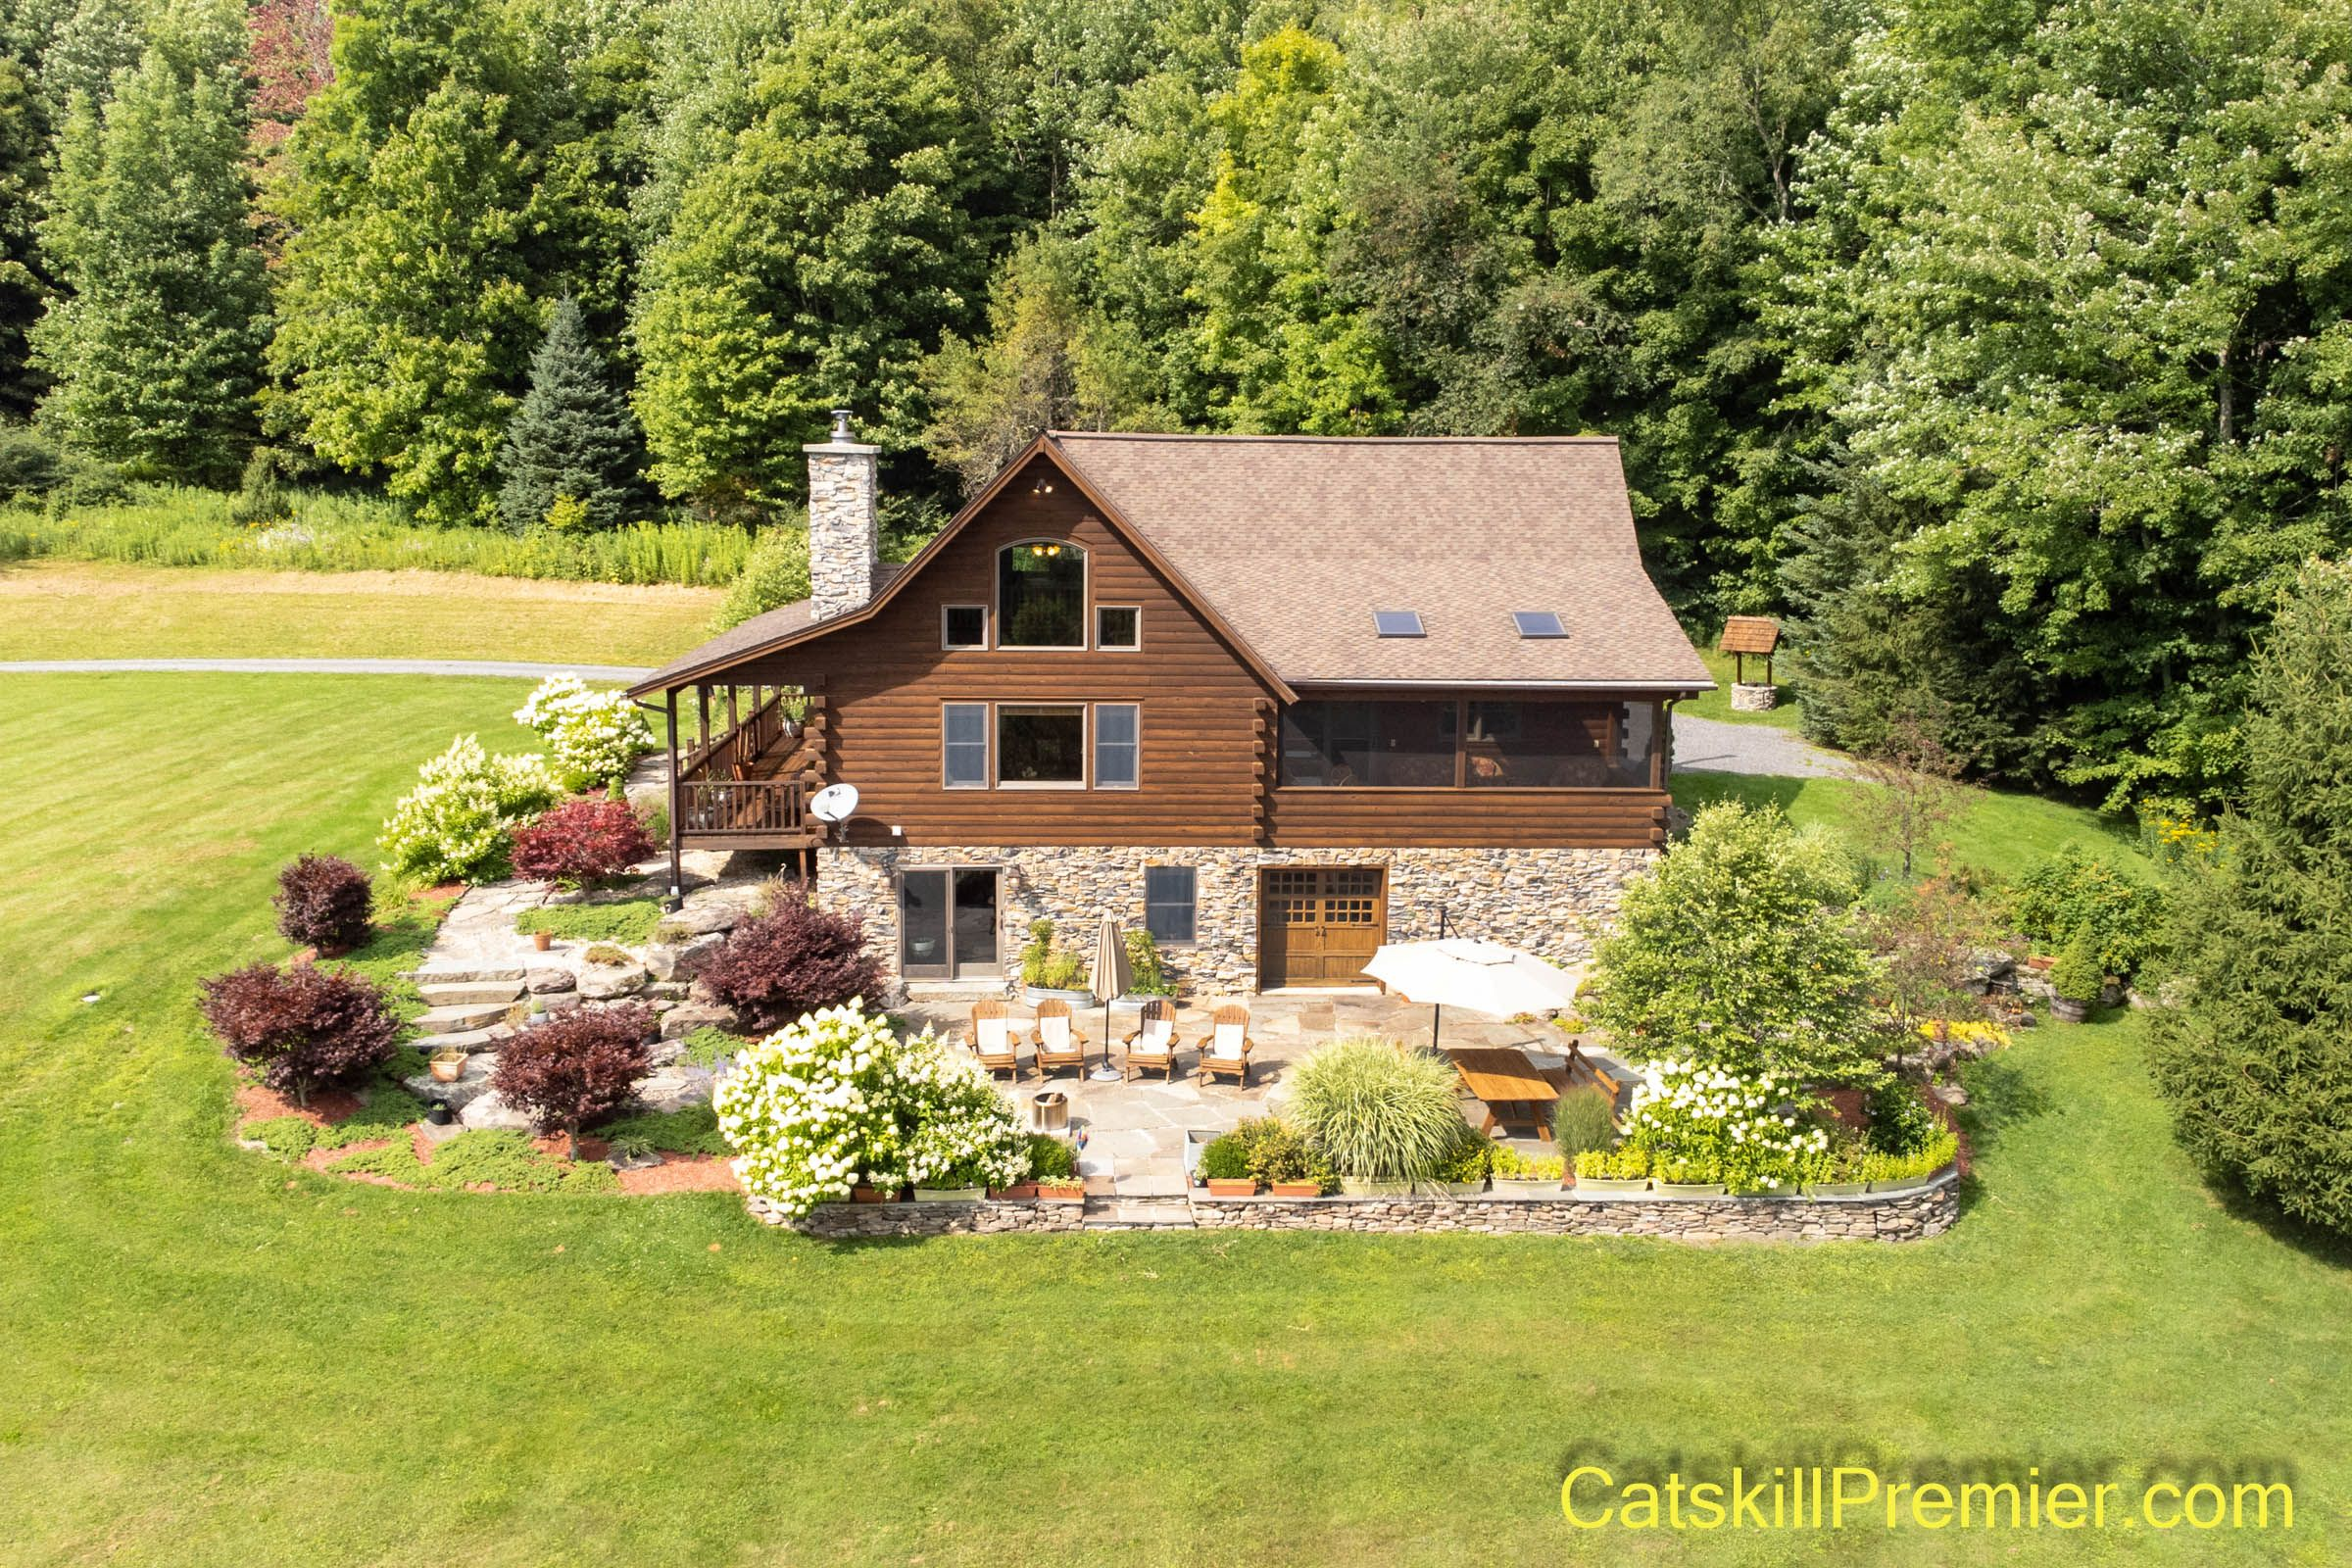 Spectacular PRIVATE SETTING with Amazing VIEWS - PRIVATE 2003 Log Home with BIG VIEWS